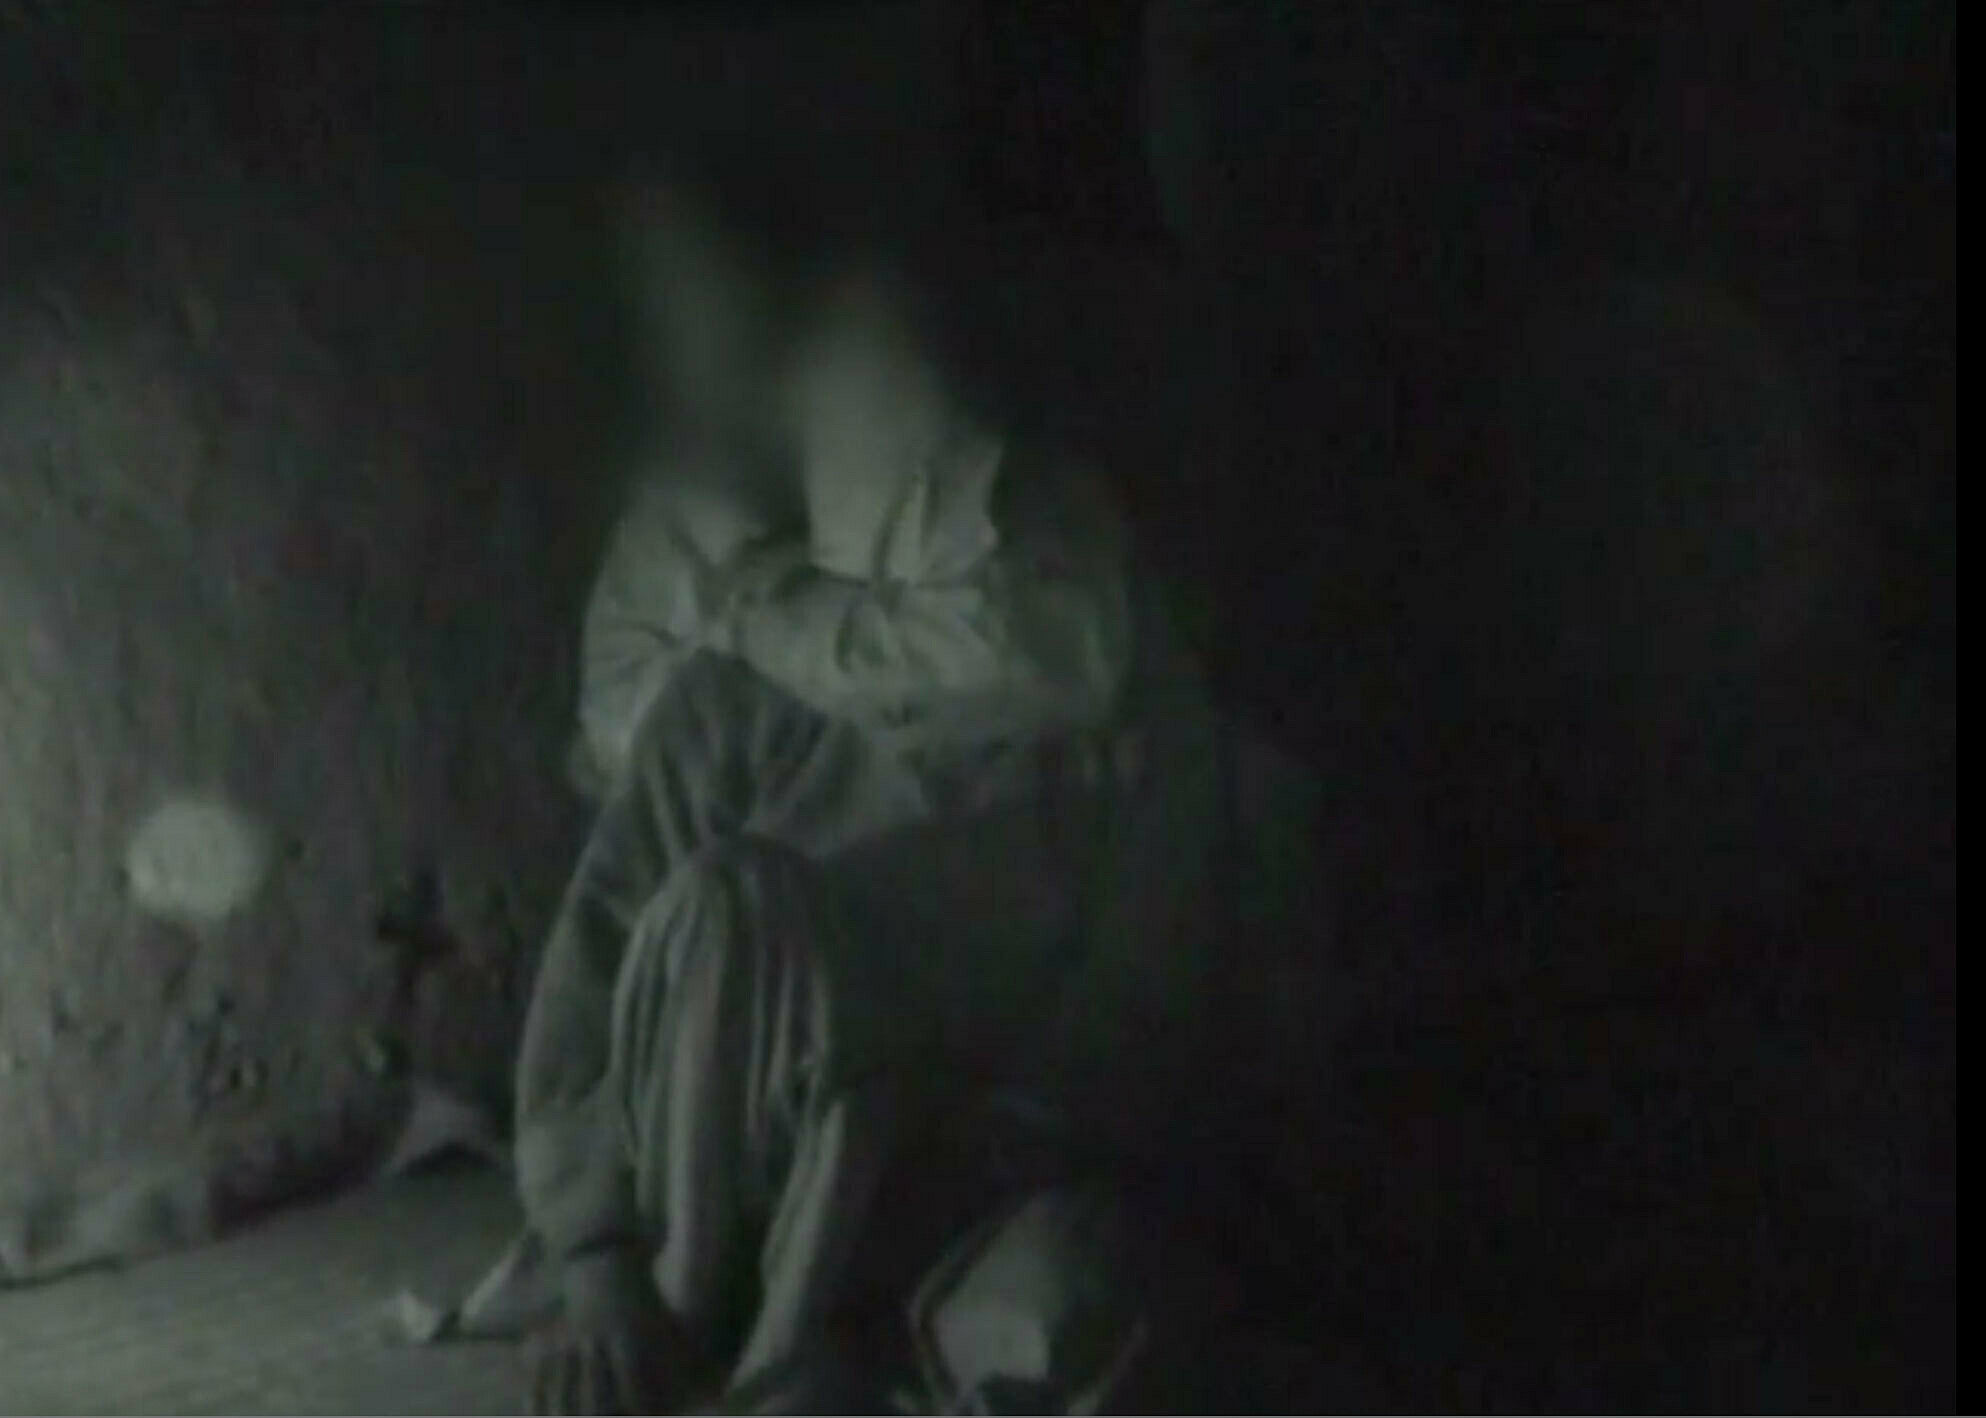 Blurry and dark image of a person sitting.